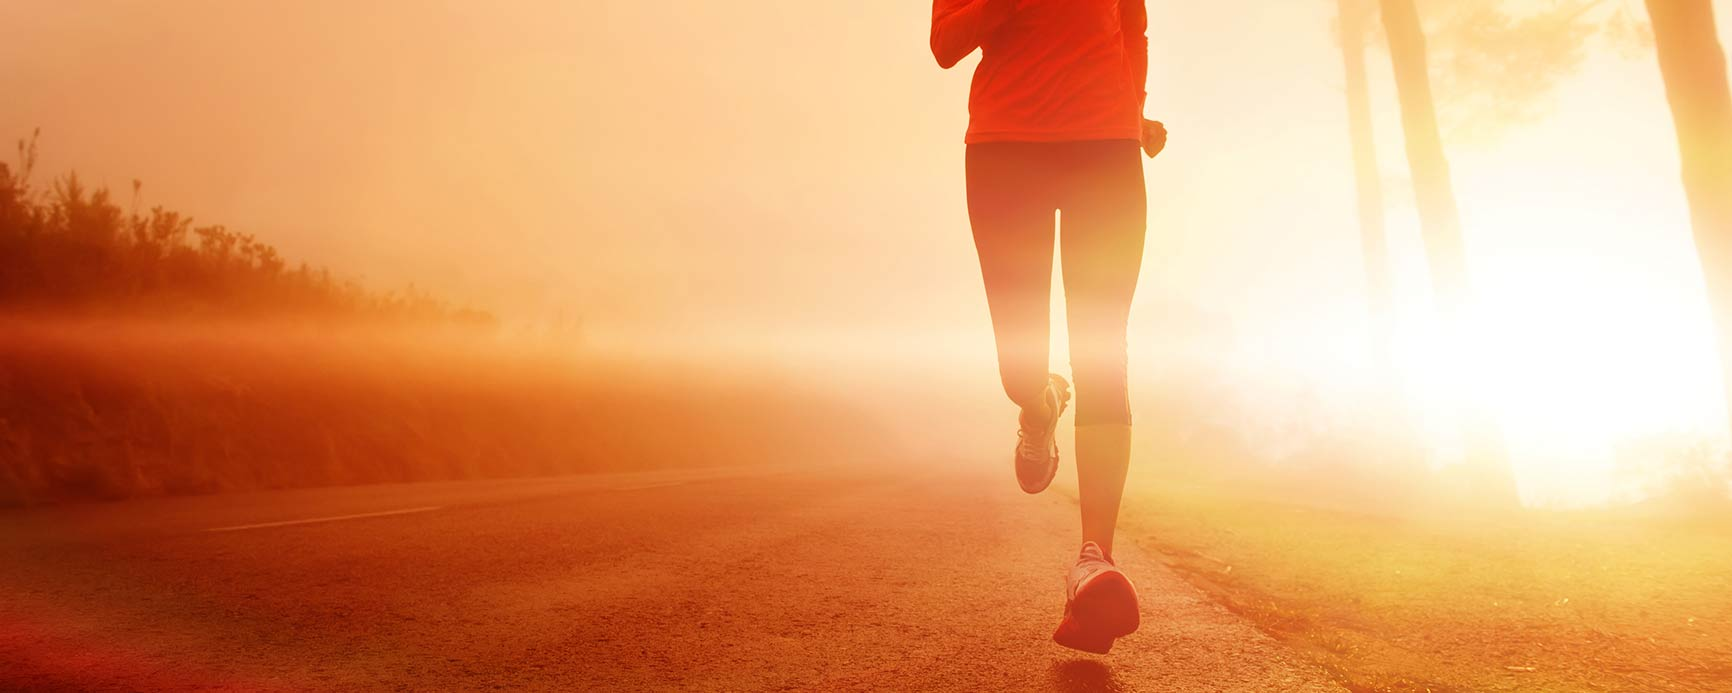 background-image-runners-sun